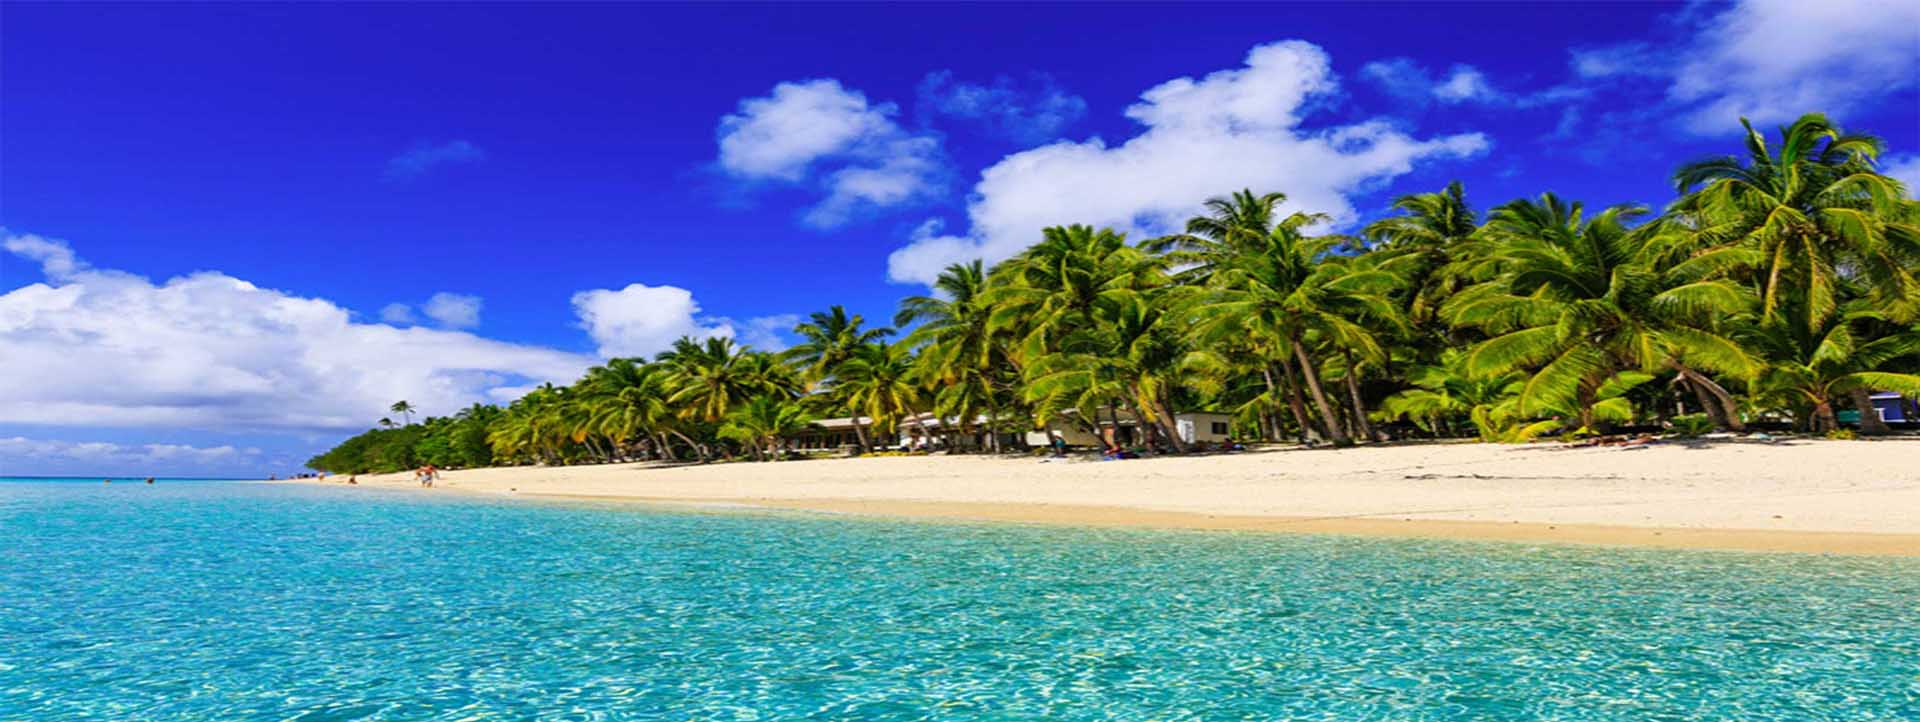 FIJI-HOLIDAY-DEALS-beach-palm-trees